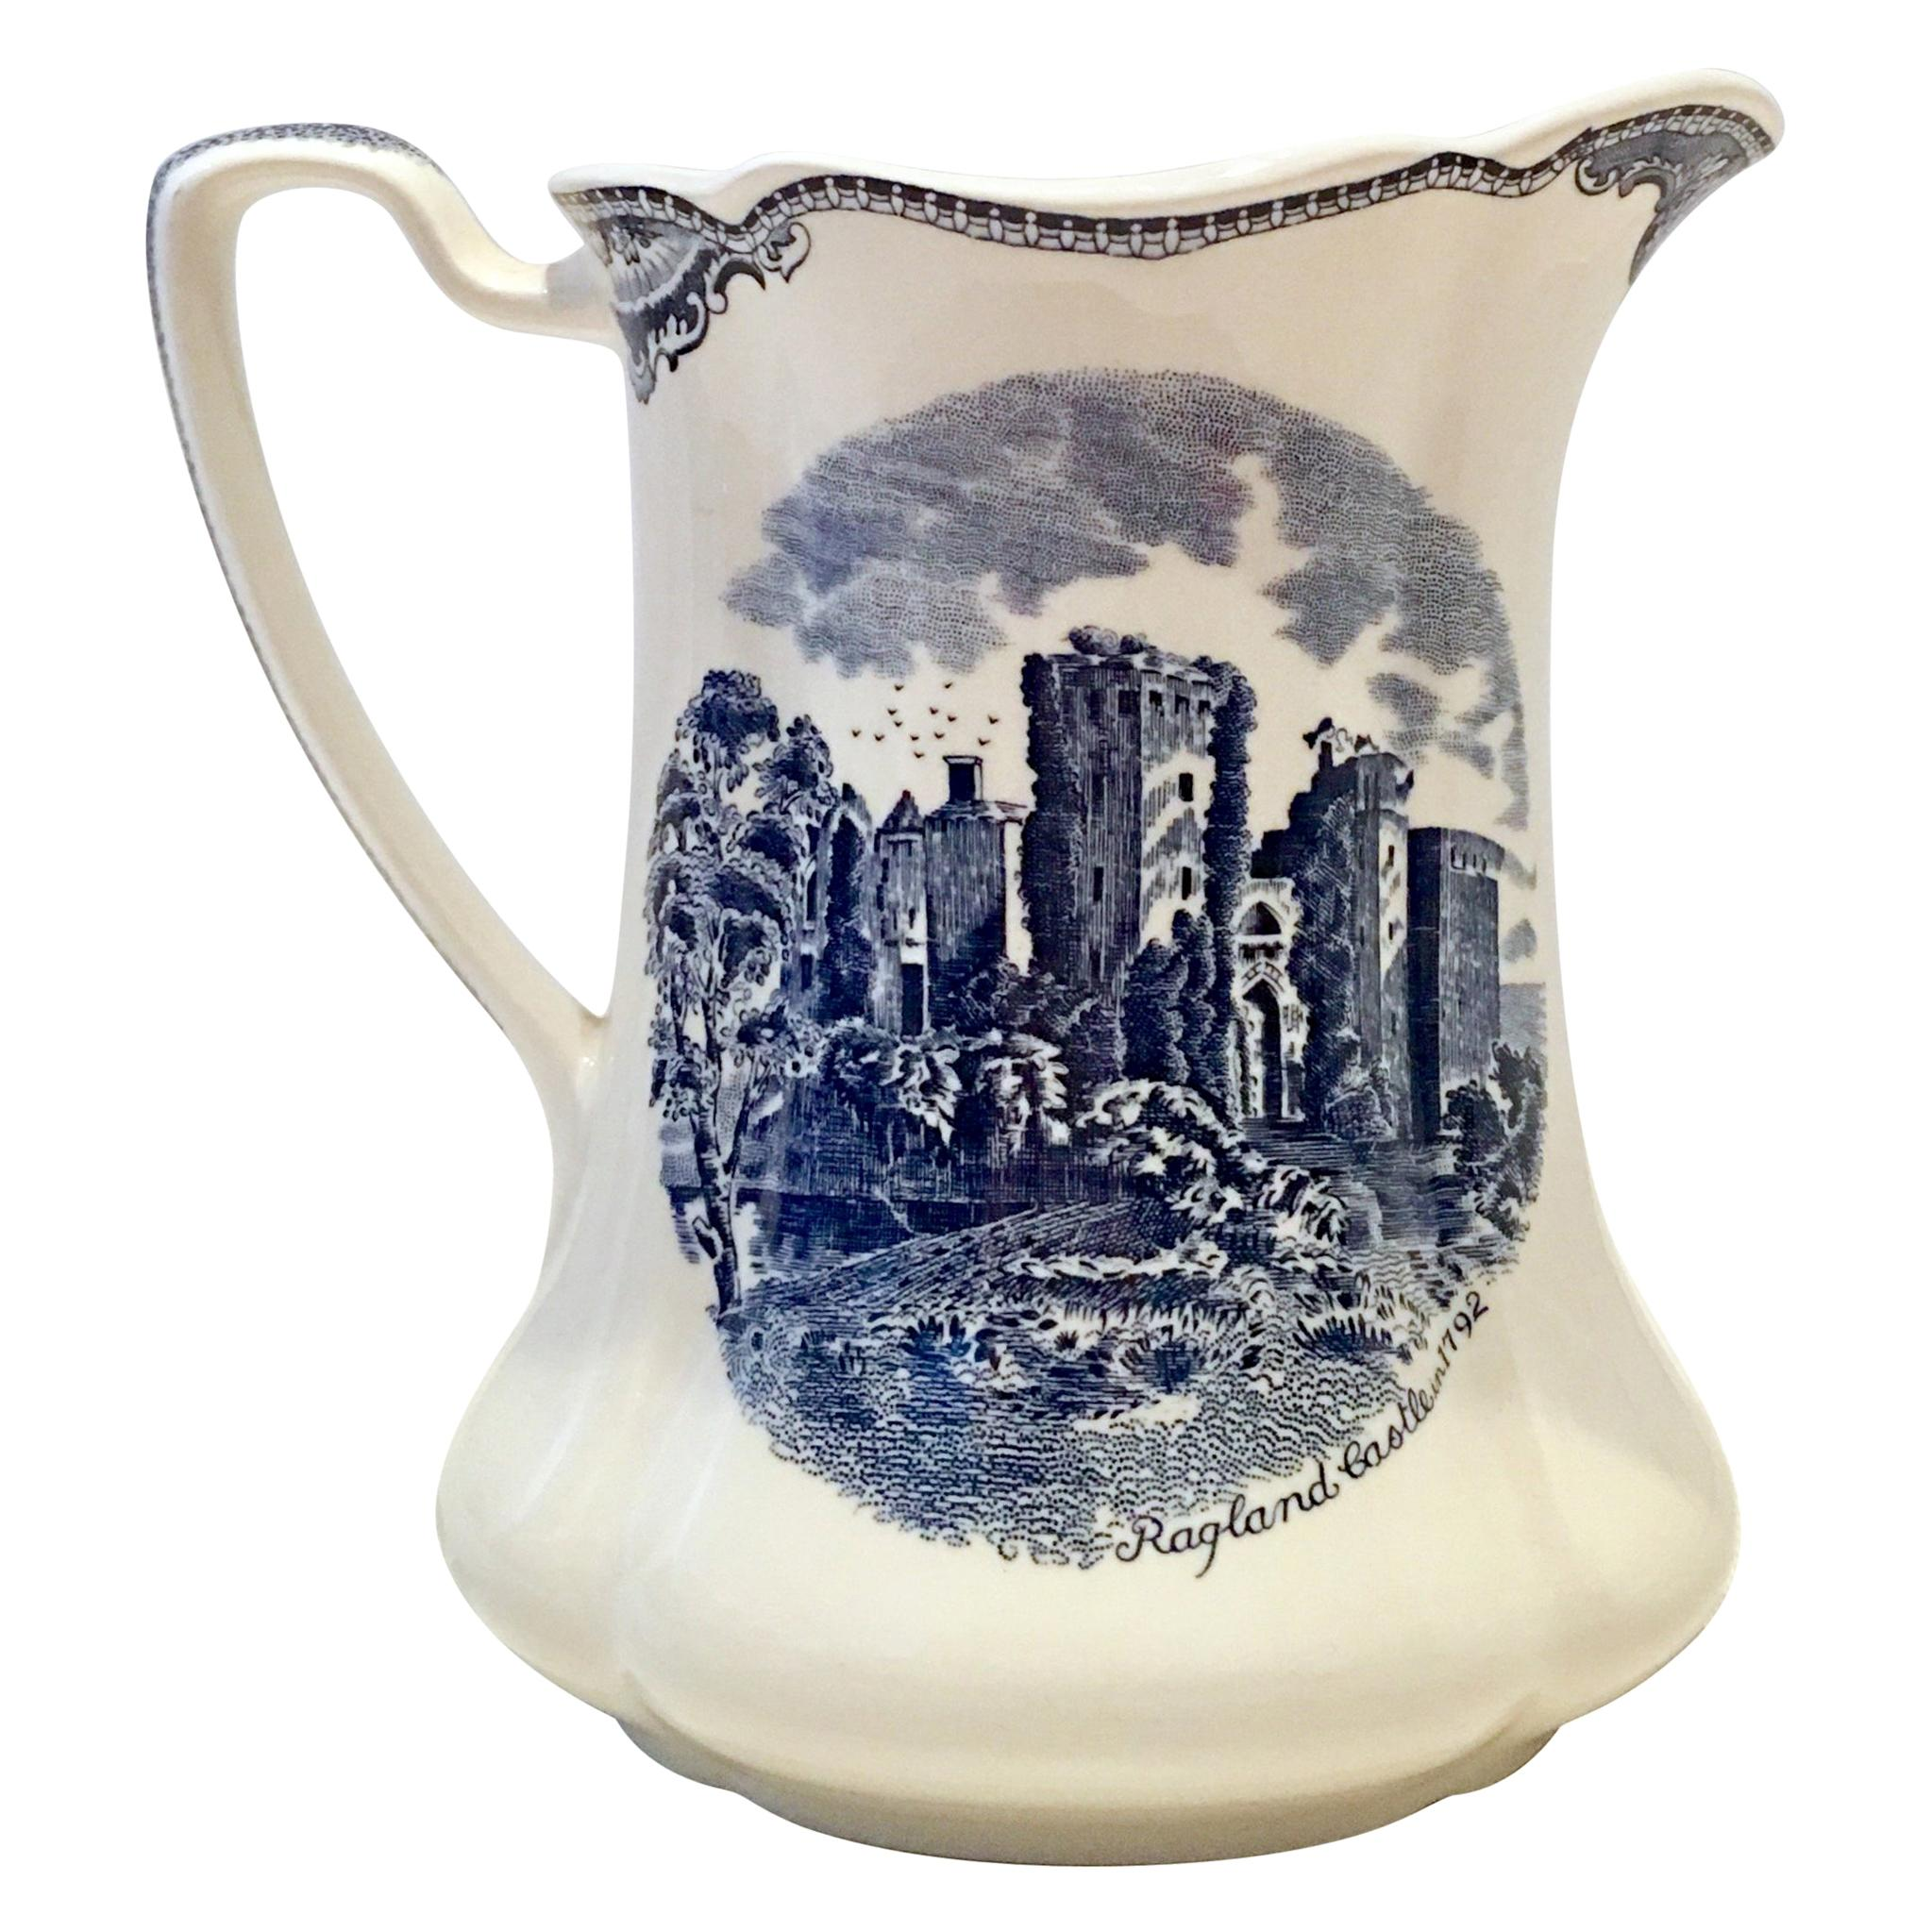 """20th Century English Ceramic """"Old British Castles"""" Pitcher by Johnson Brothers"""